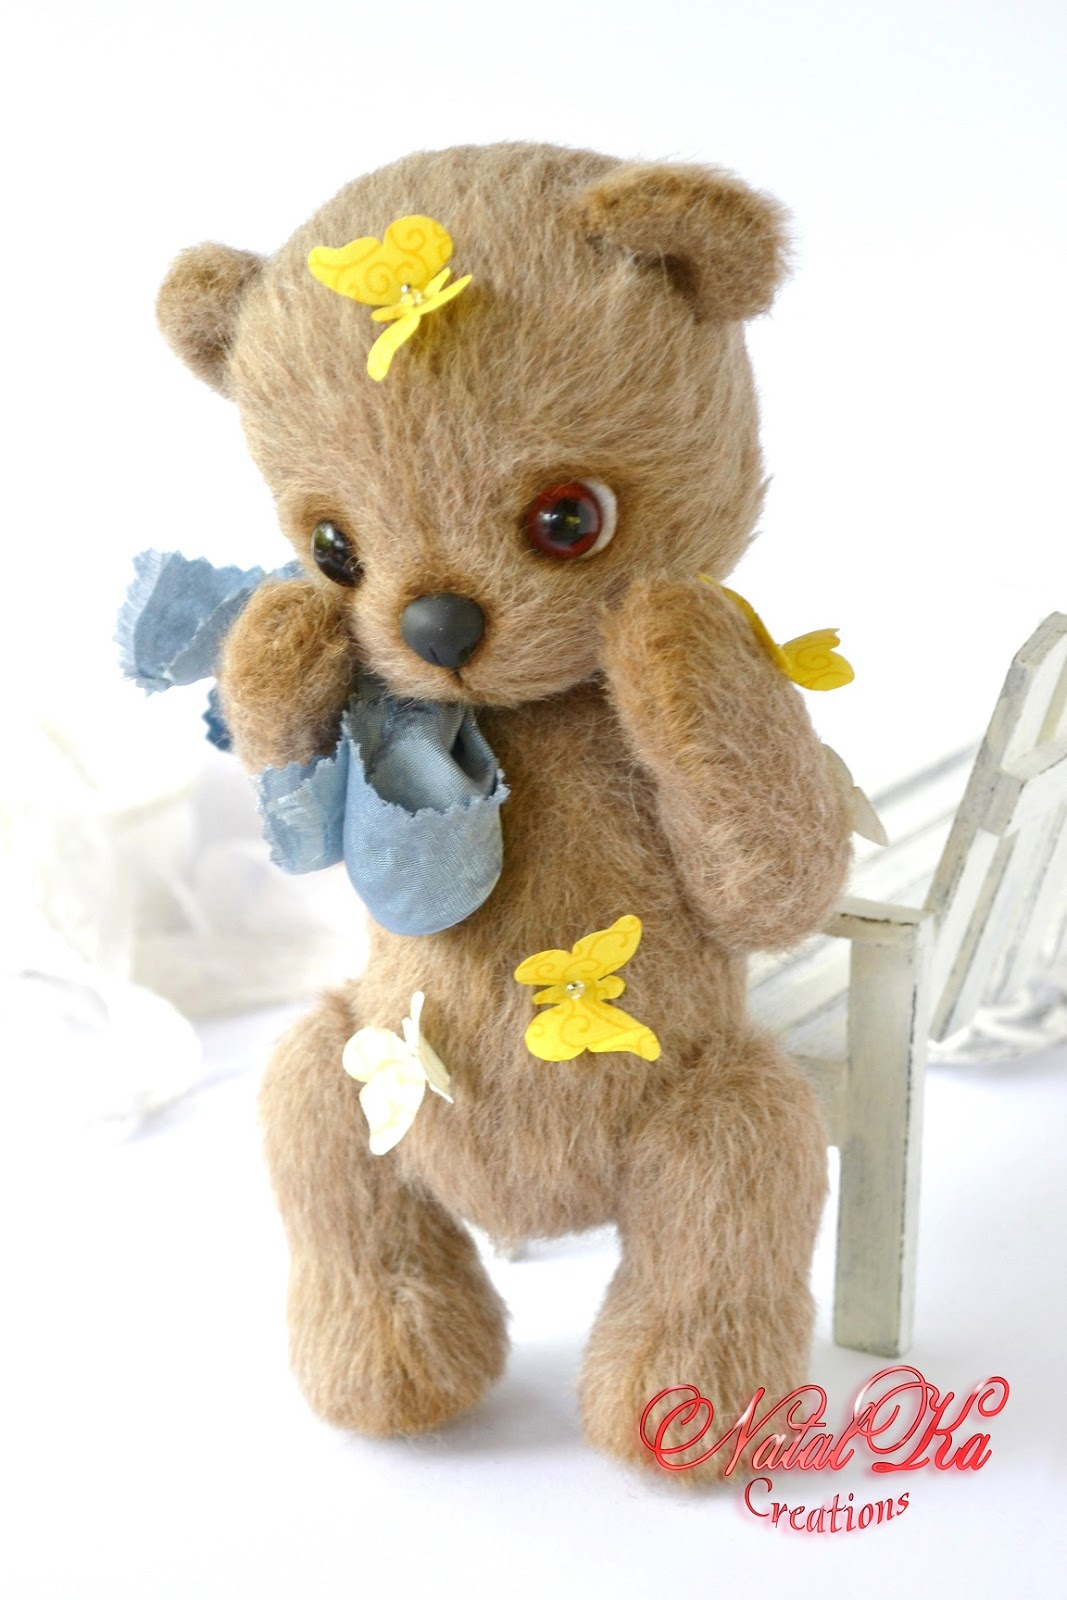 Artist teddy bear, teddy bear handmade, teddy ooak, jointed bear, handmade bear by NatalKa Creations. Авторский мишка тедди ручной работы от NatalKa Creations